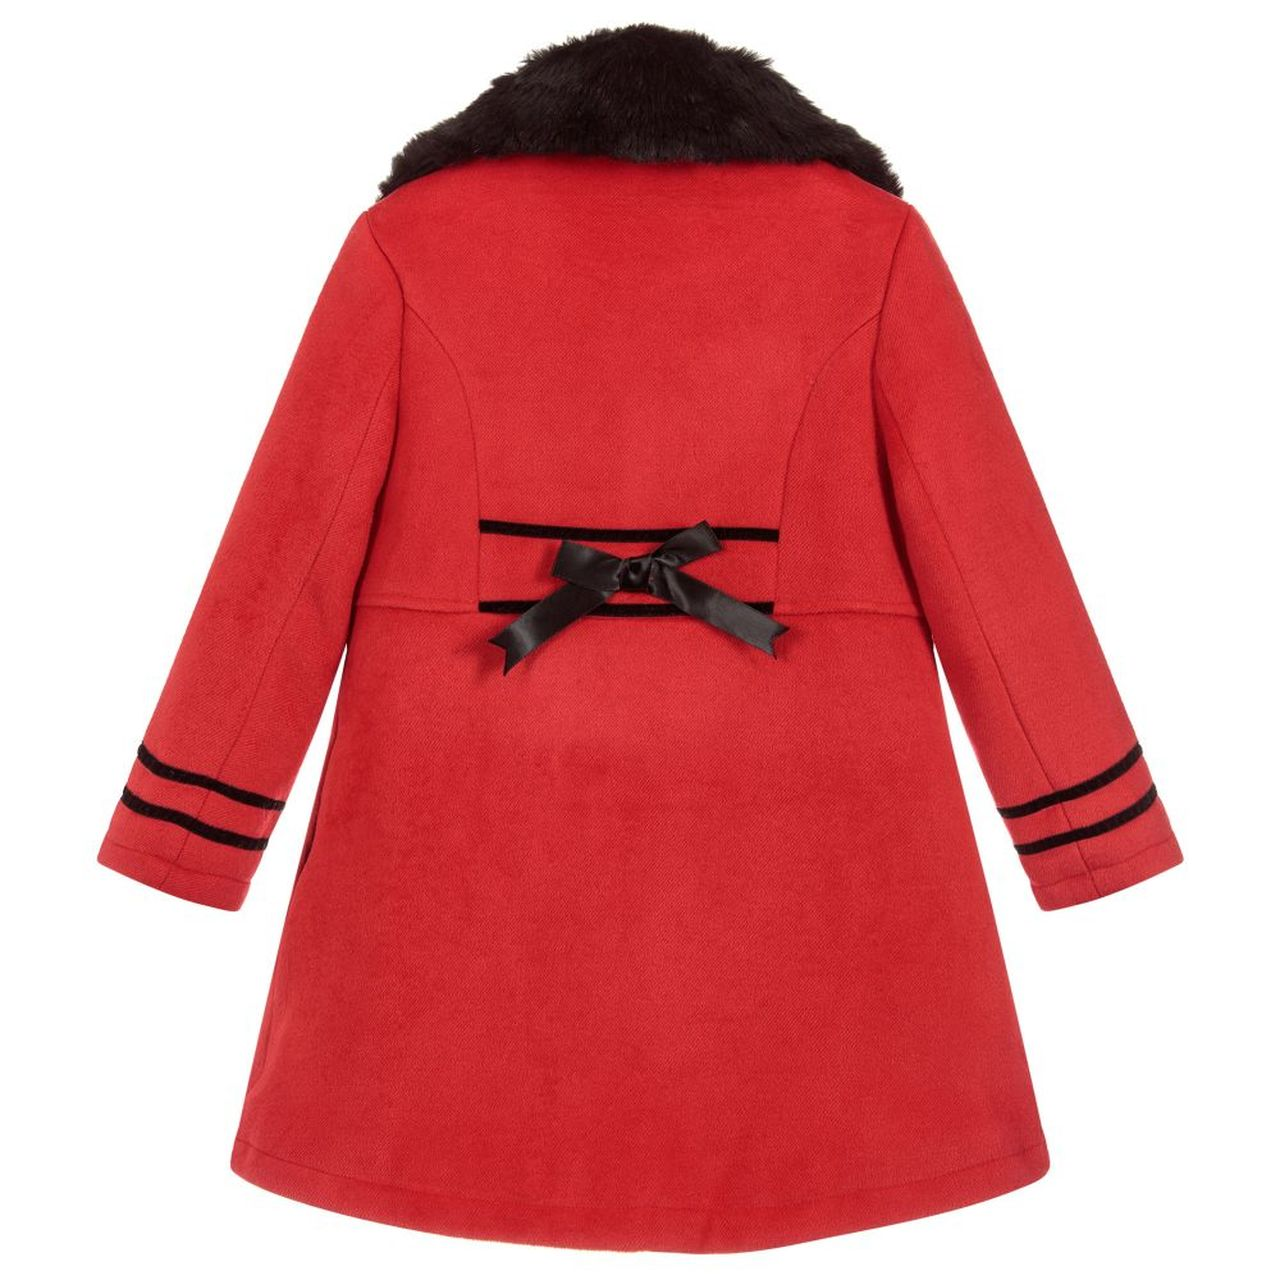 Beau Kid Classic Red Coat